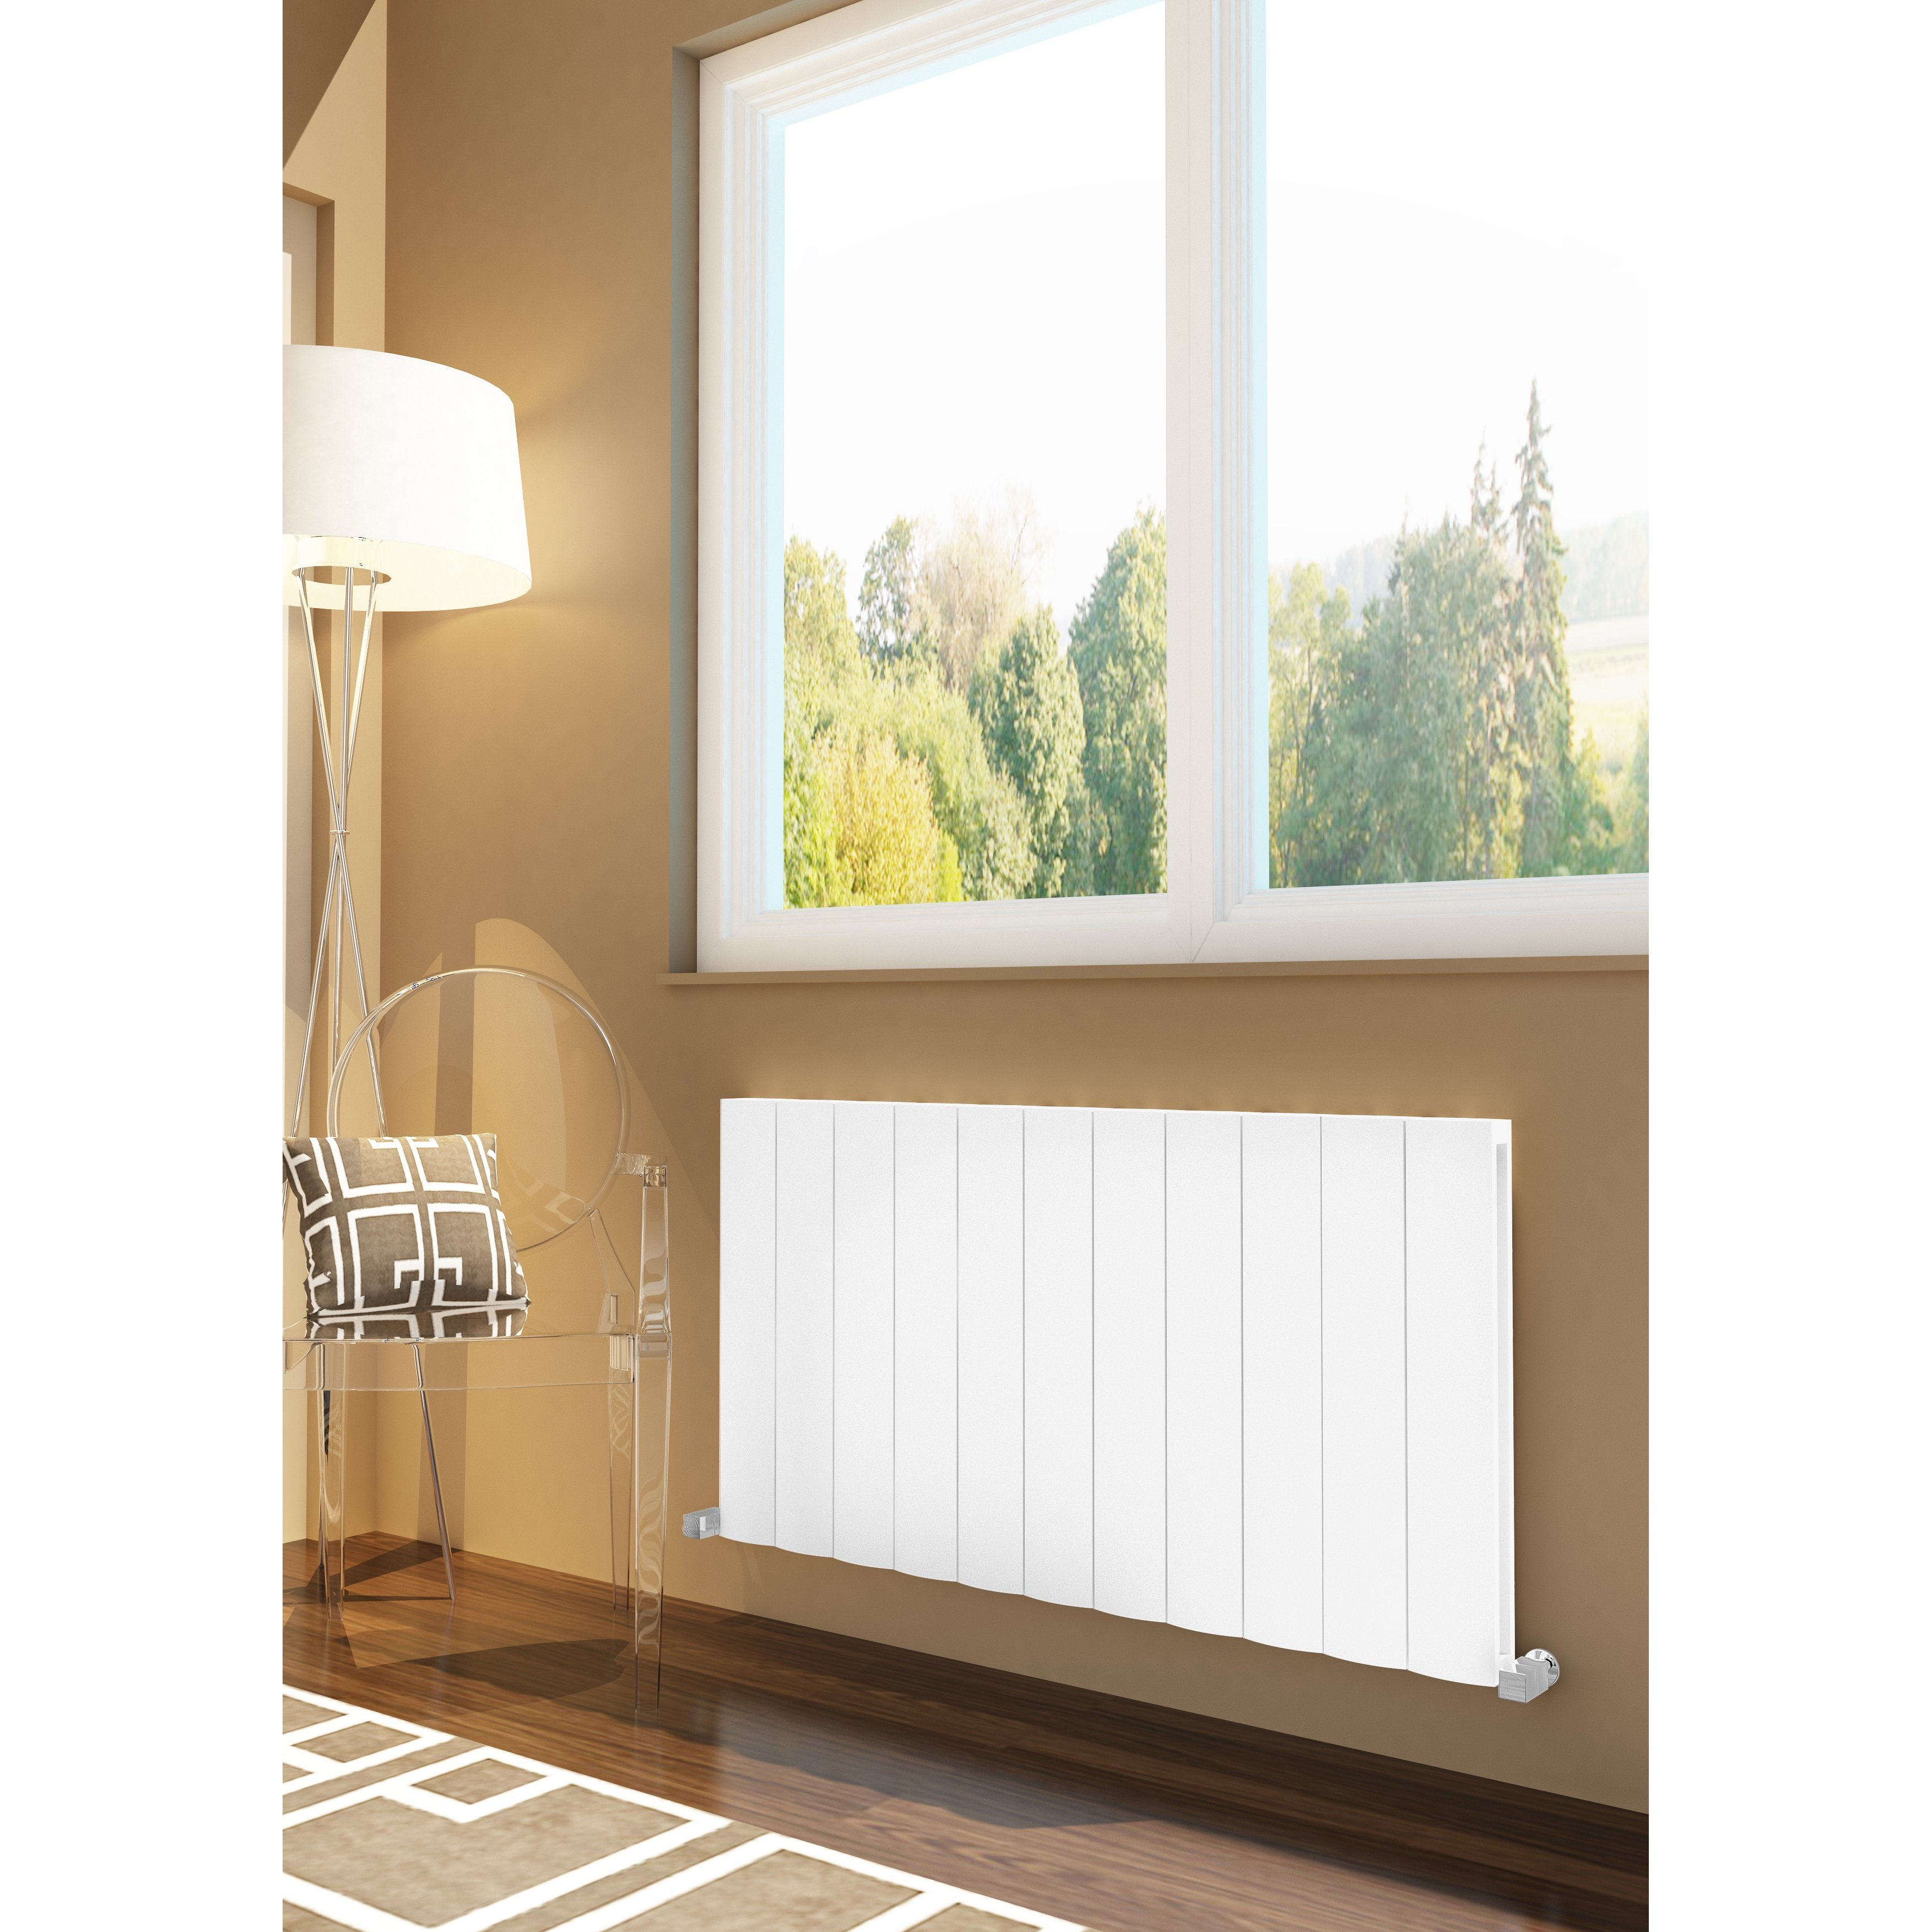 Lugo Horizontal Aluminium Radiator Heater - White & Anthracite